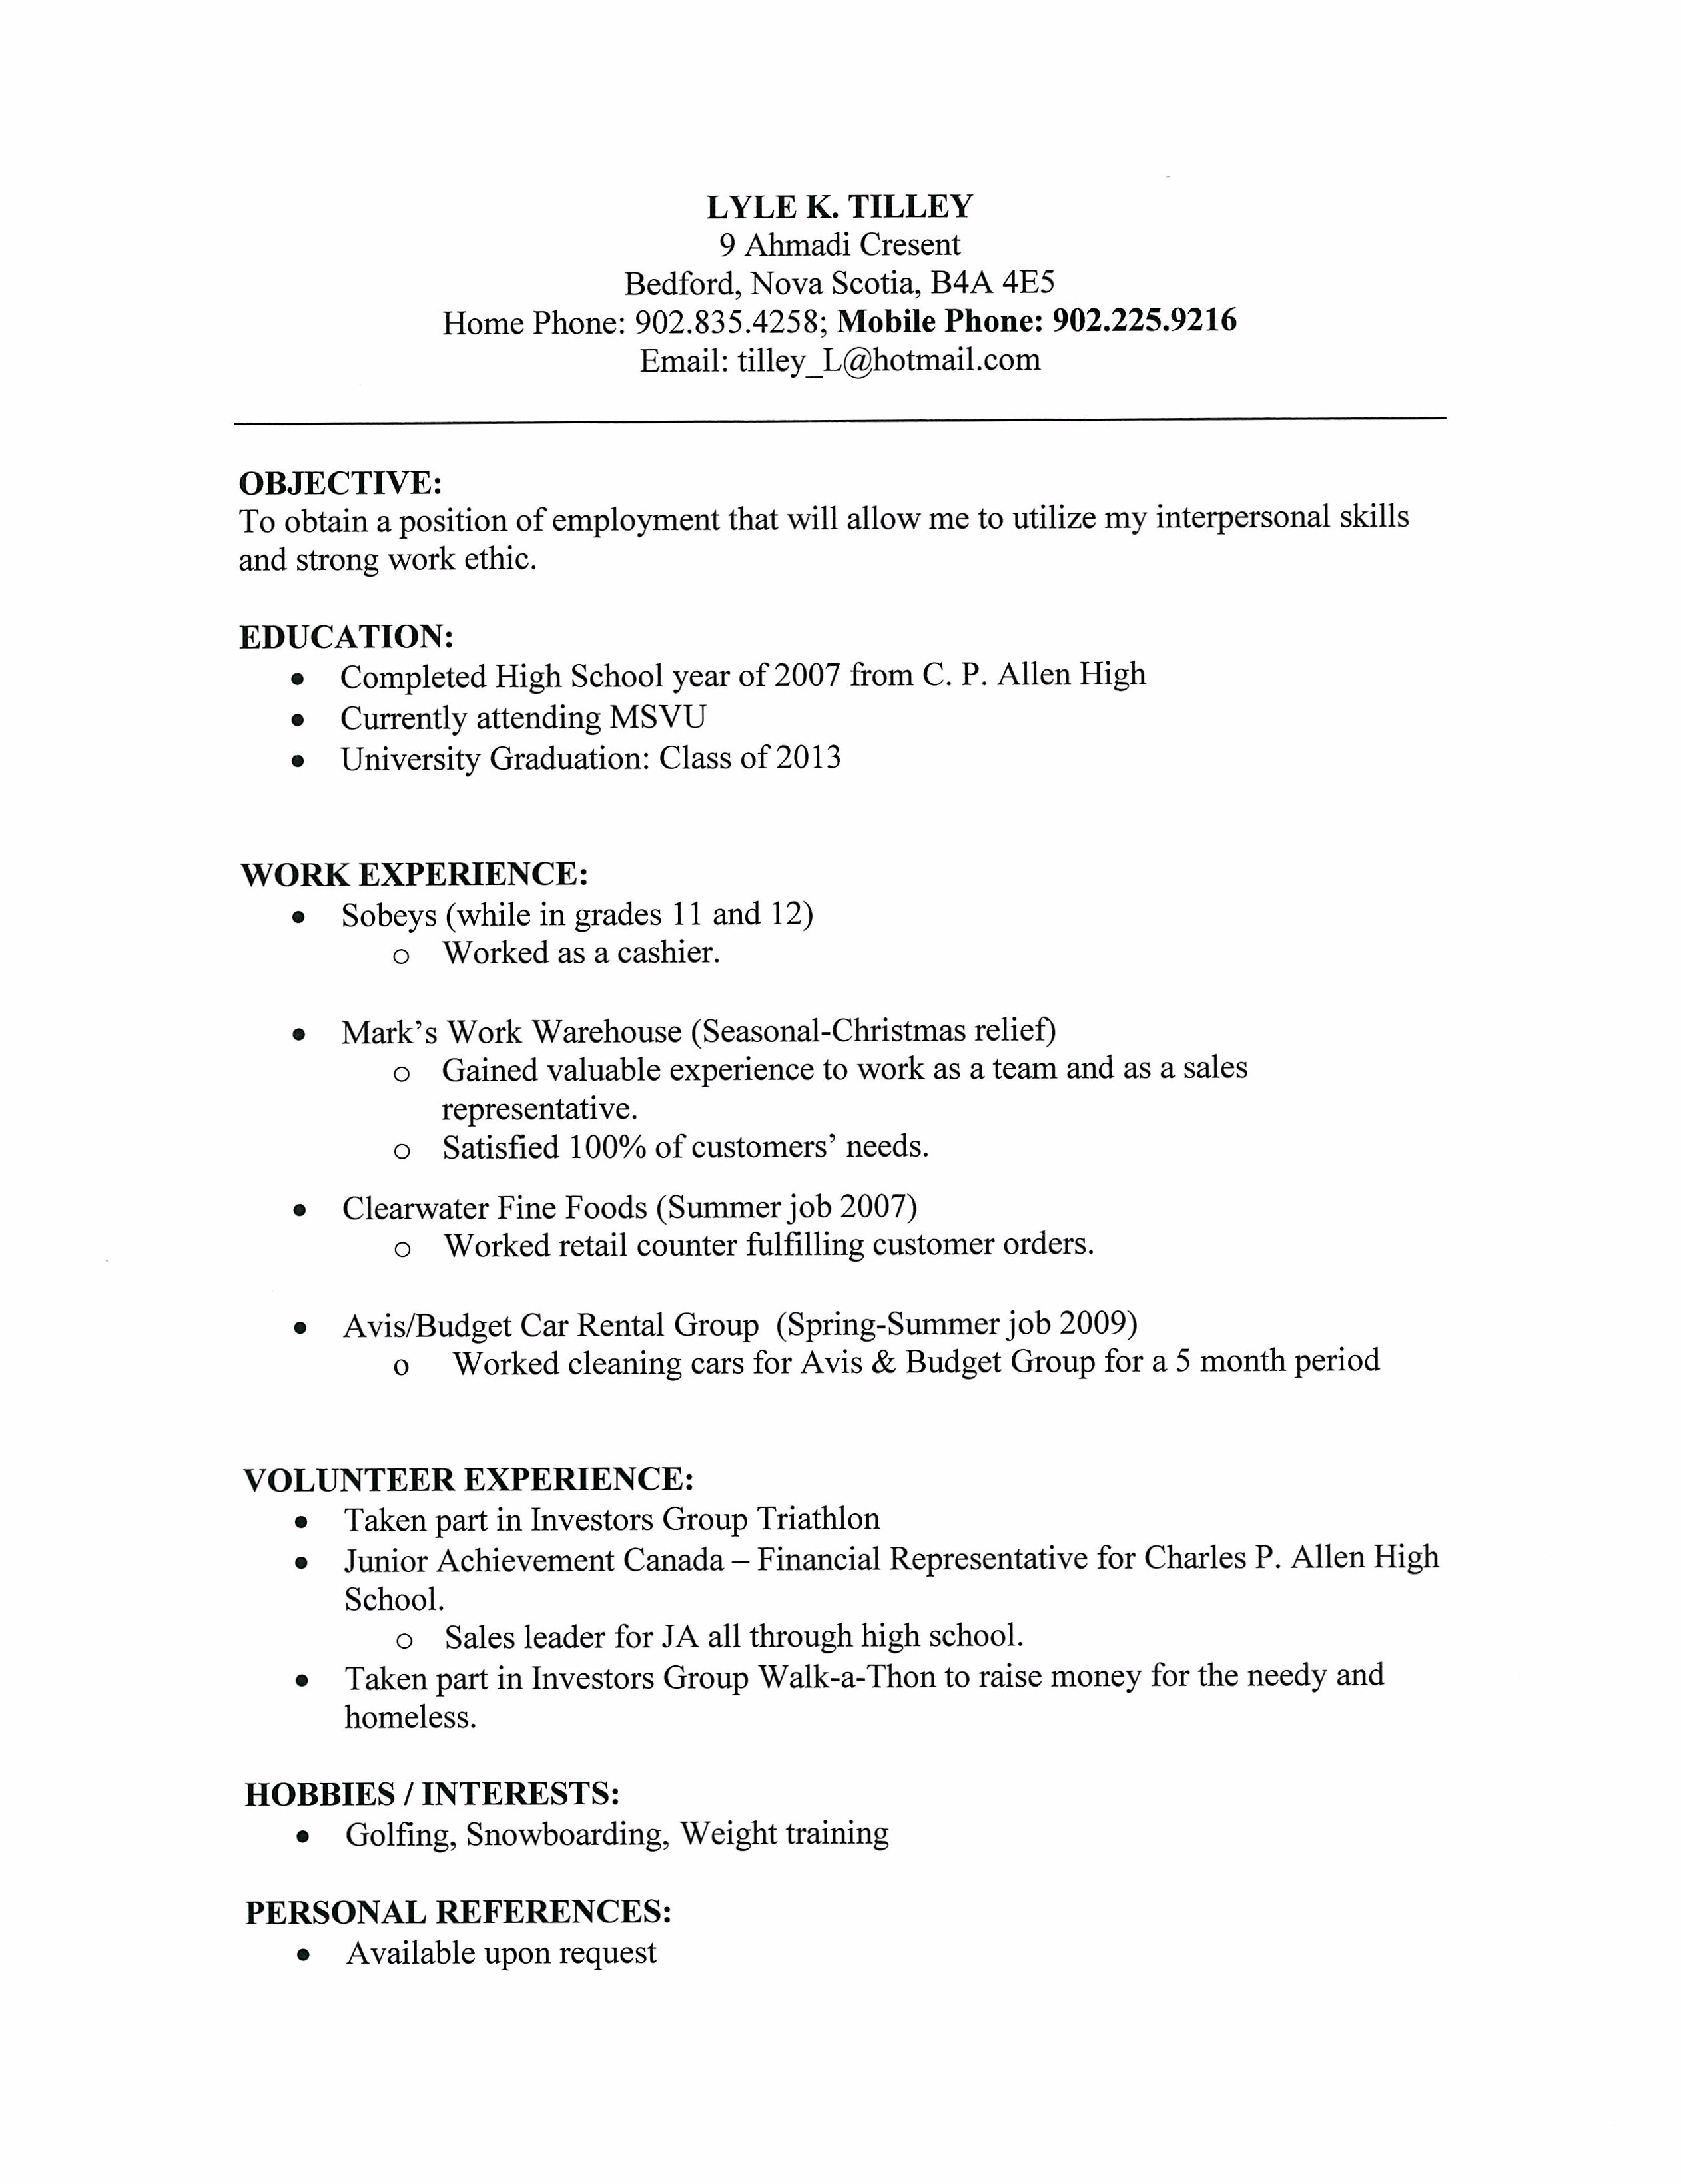 Cover Letter Templates  What Is A Cover Letter  Cover Letter